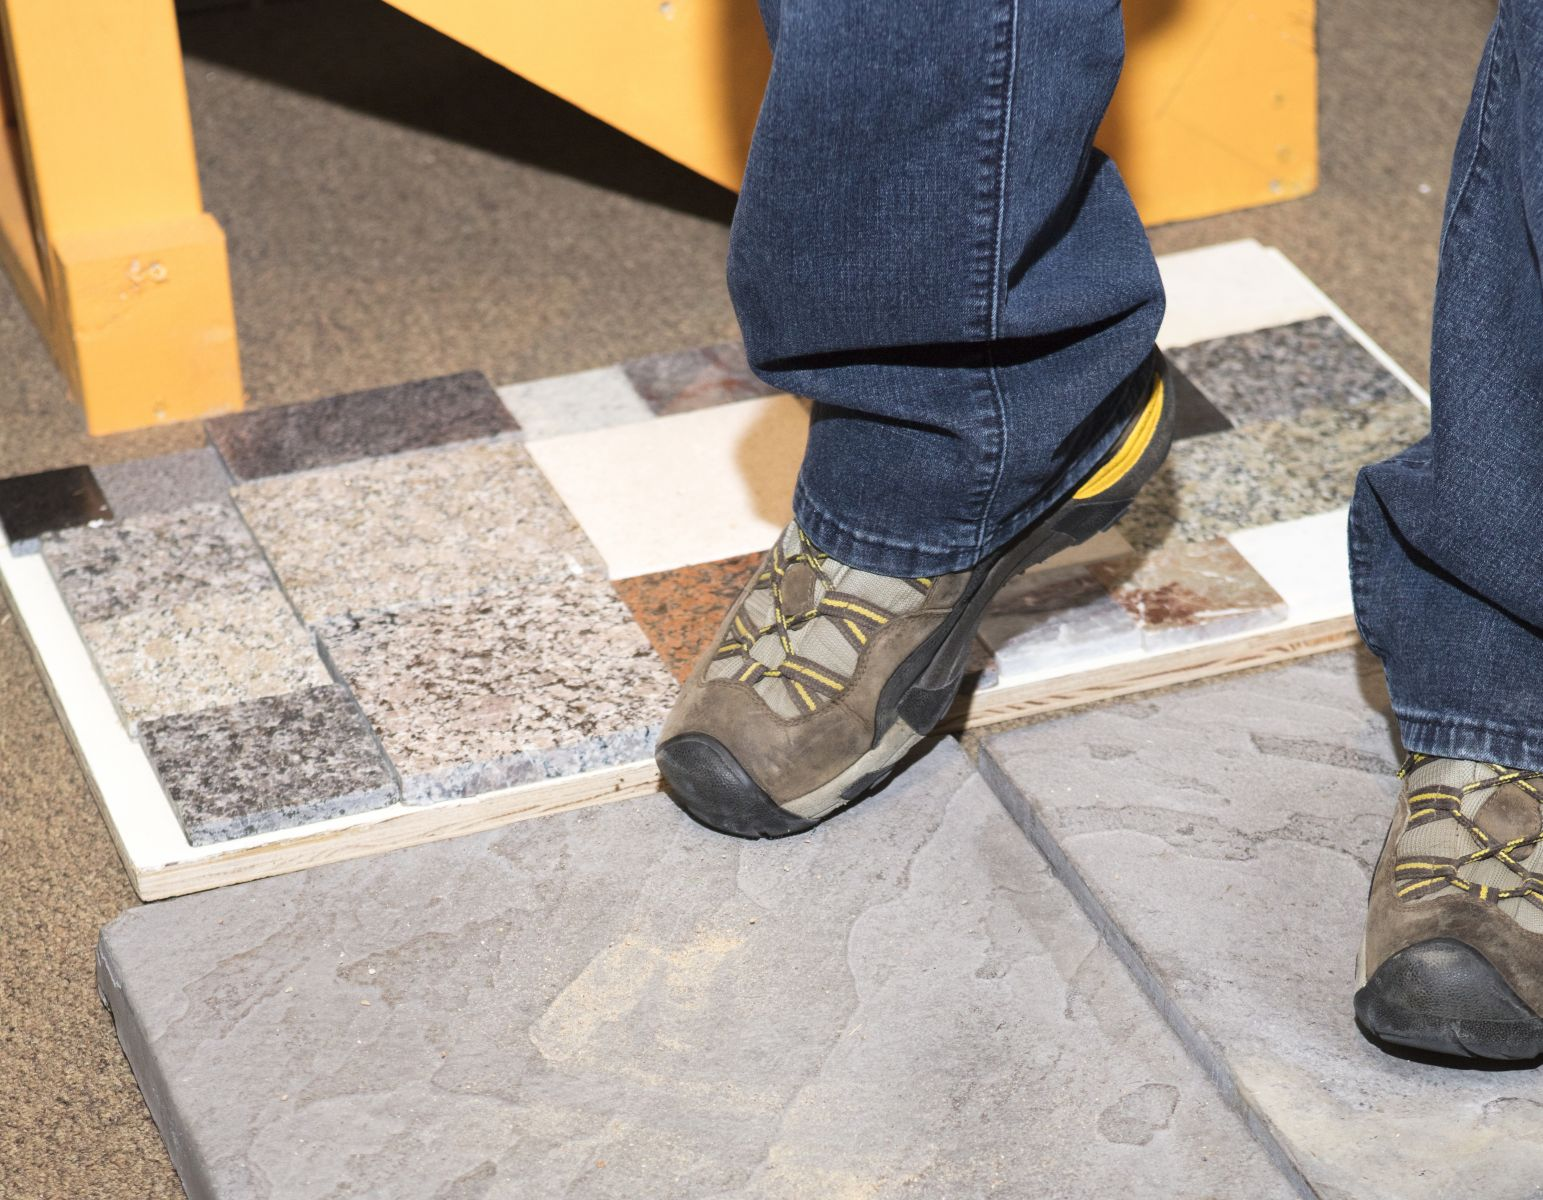 Shoes on tile recording foley